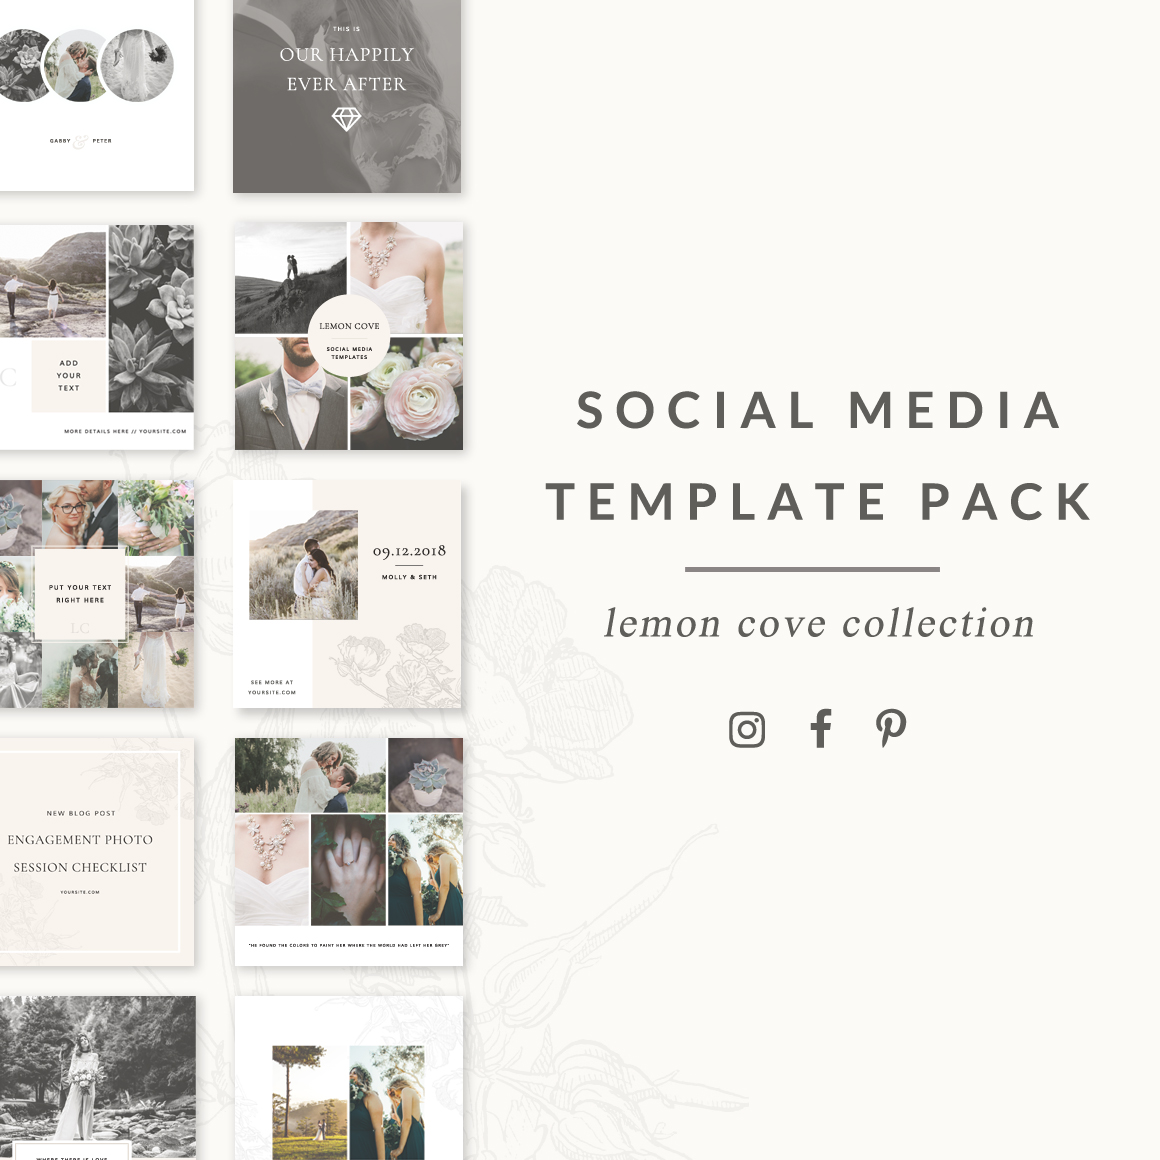 Lemon Cove Social Media Template Pack